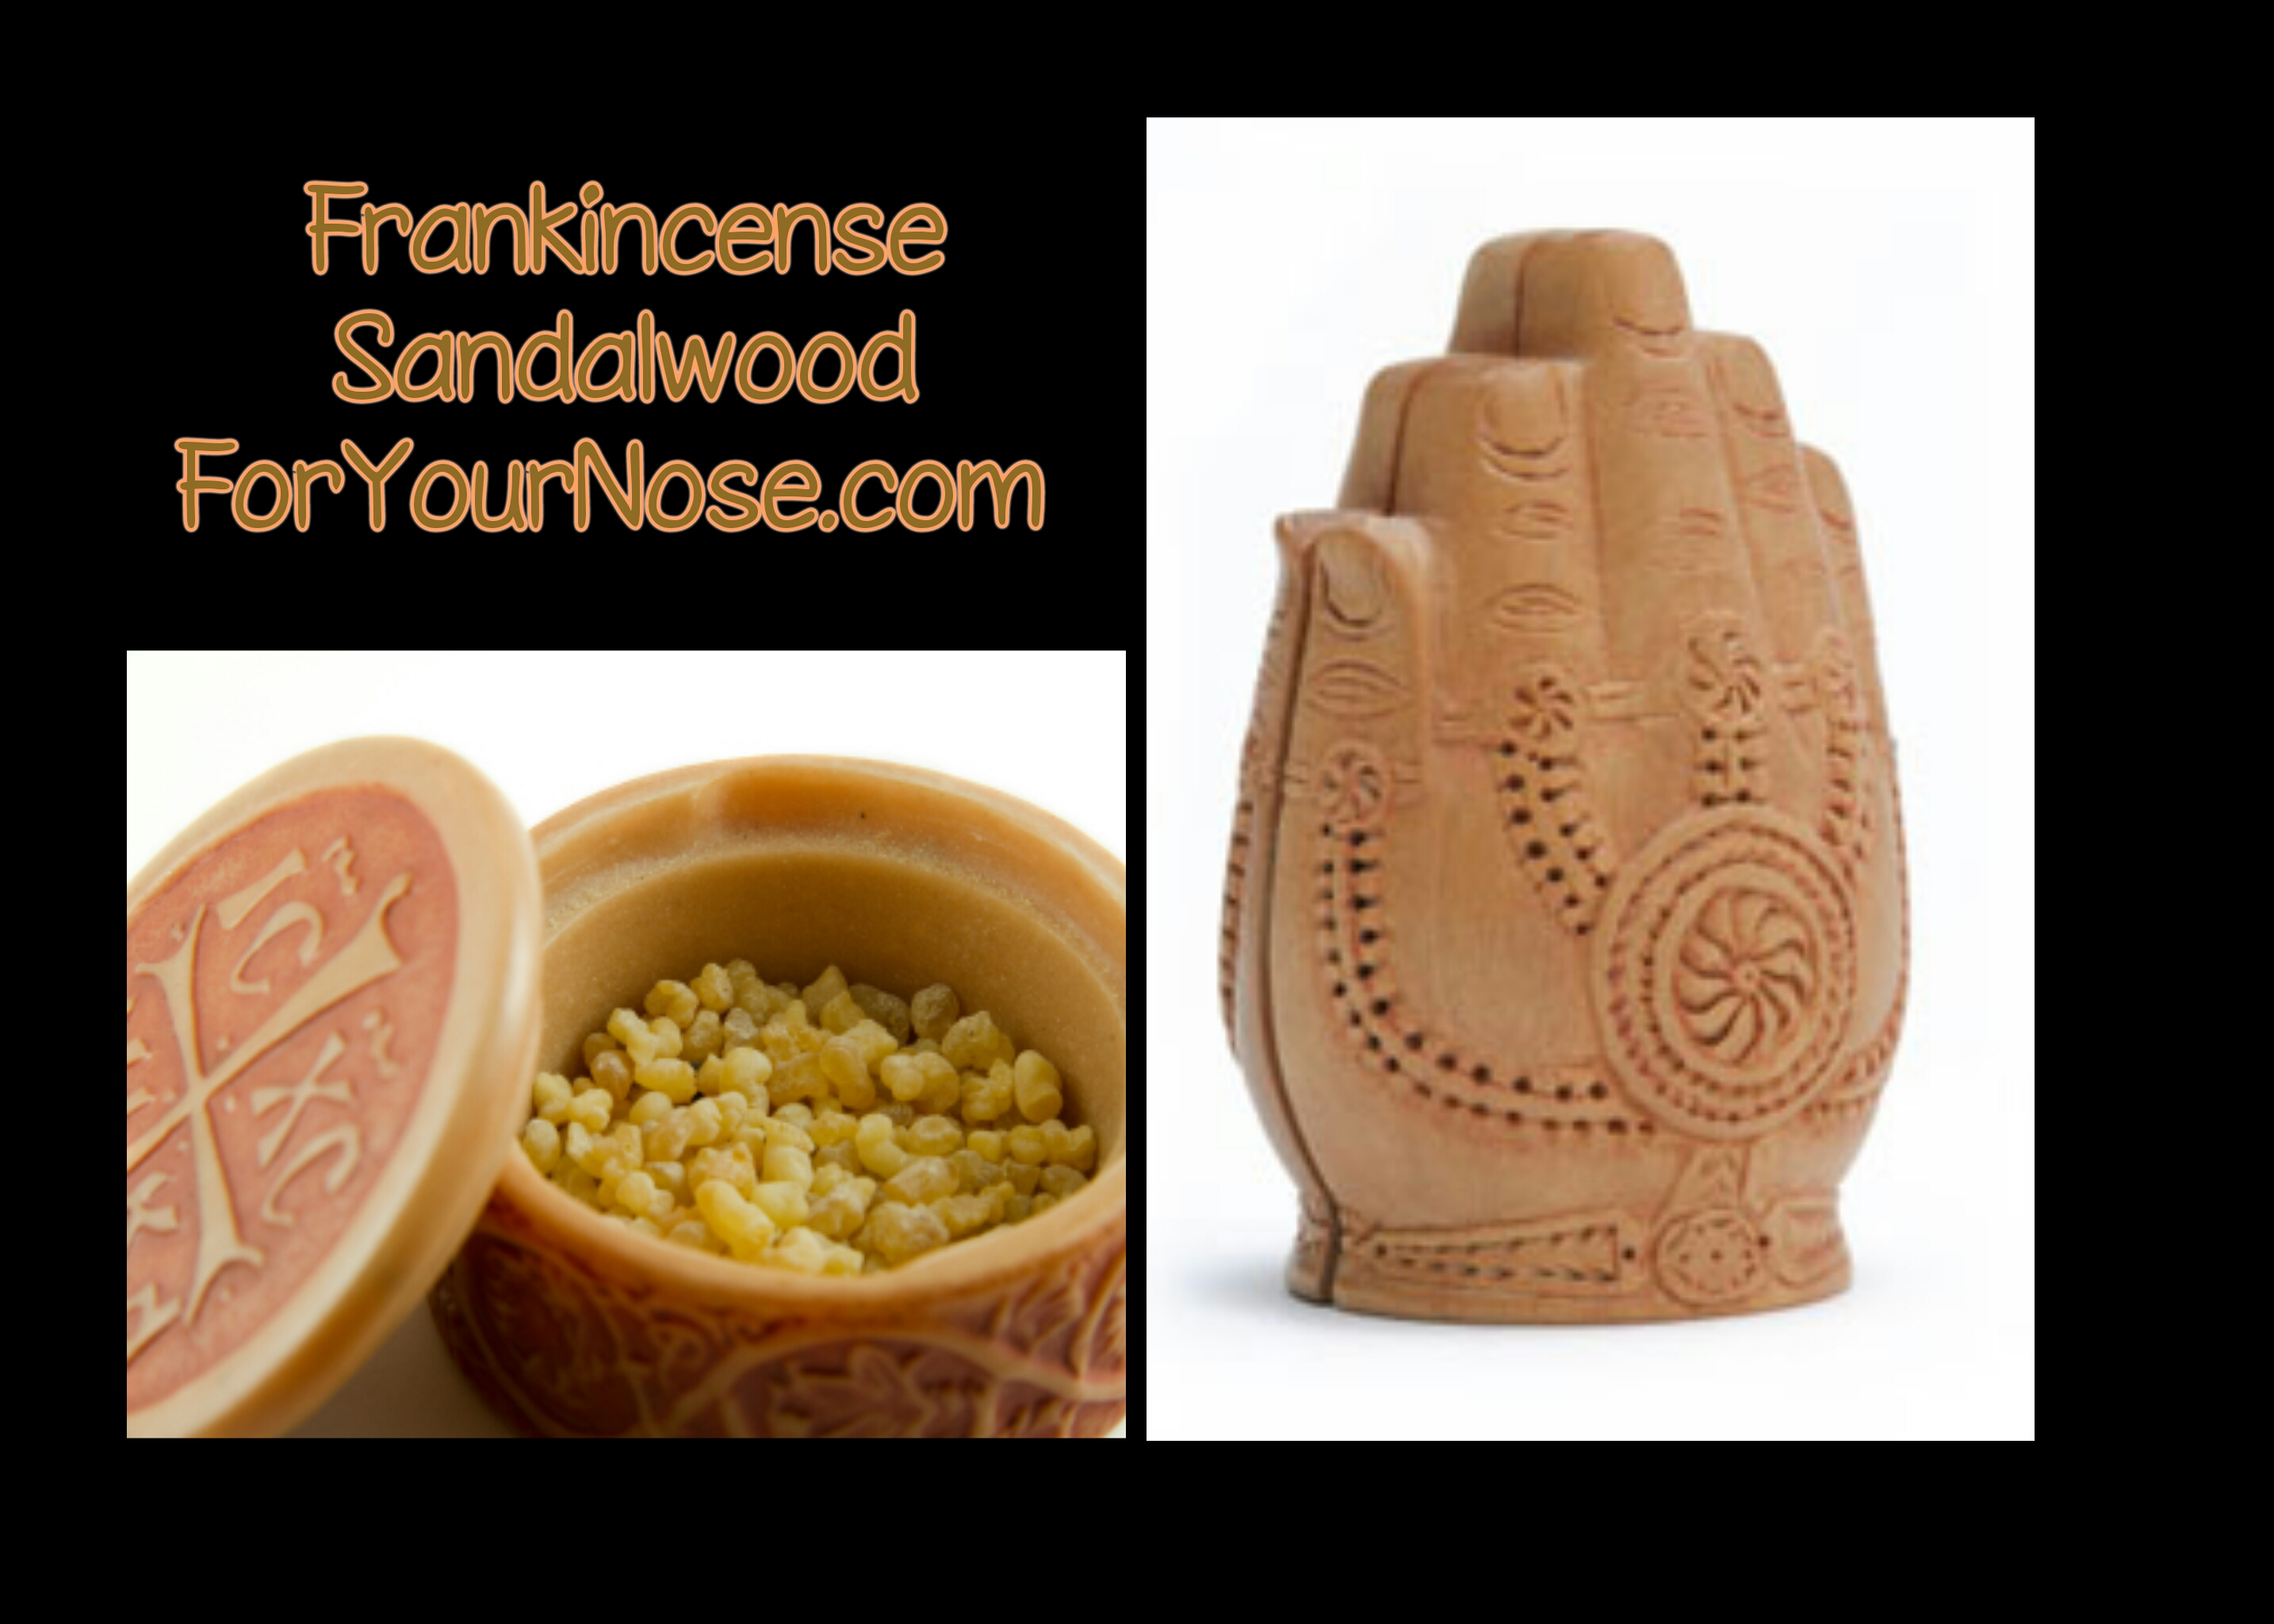 Frankincense Sandalwood fragrance